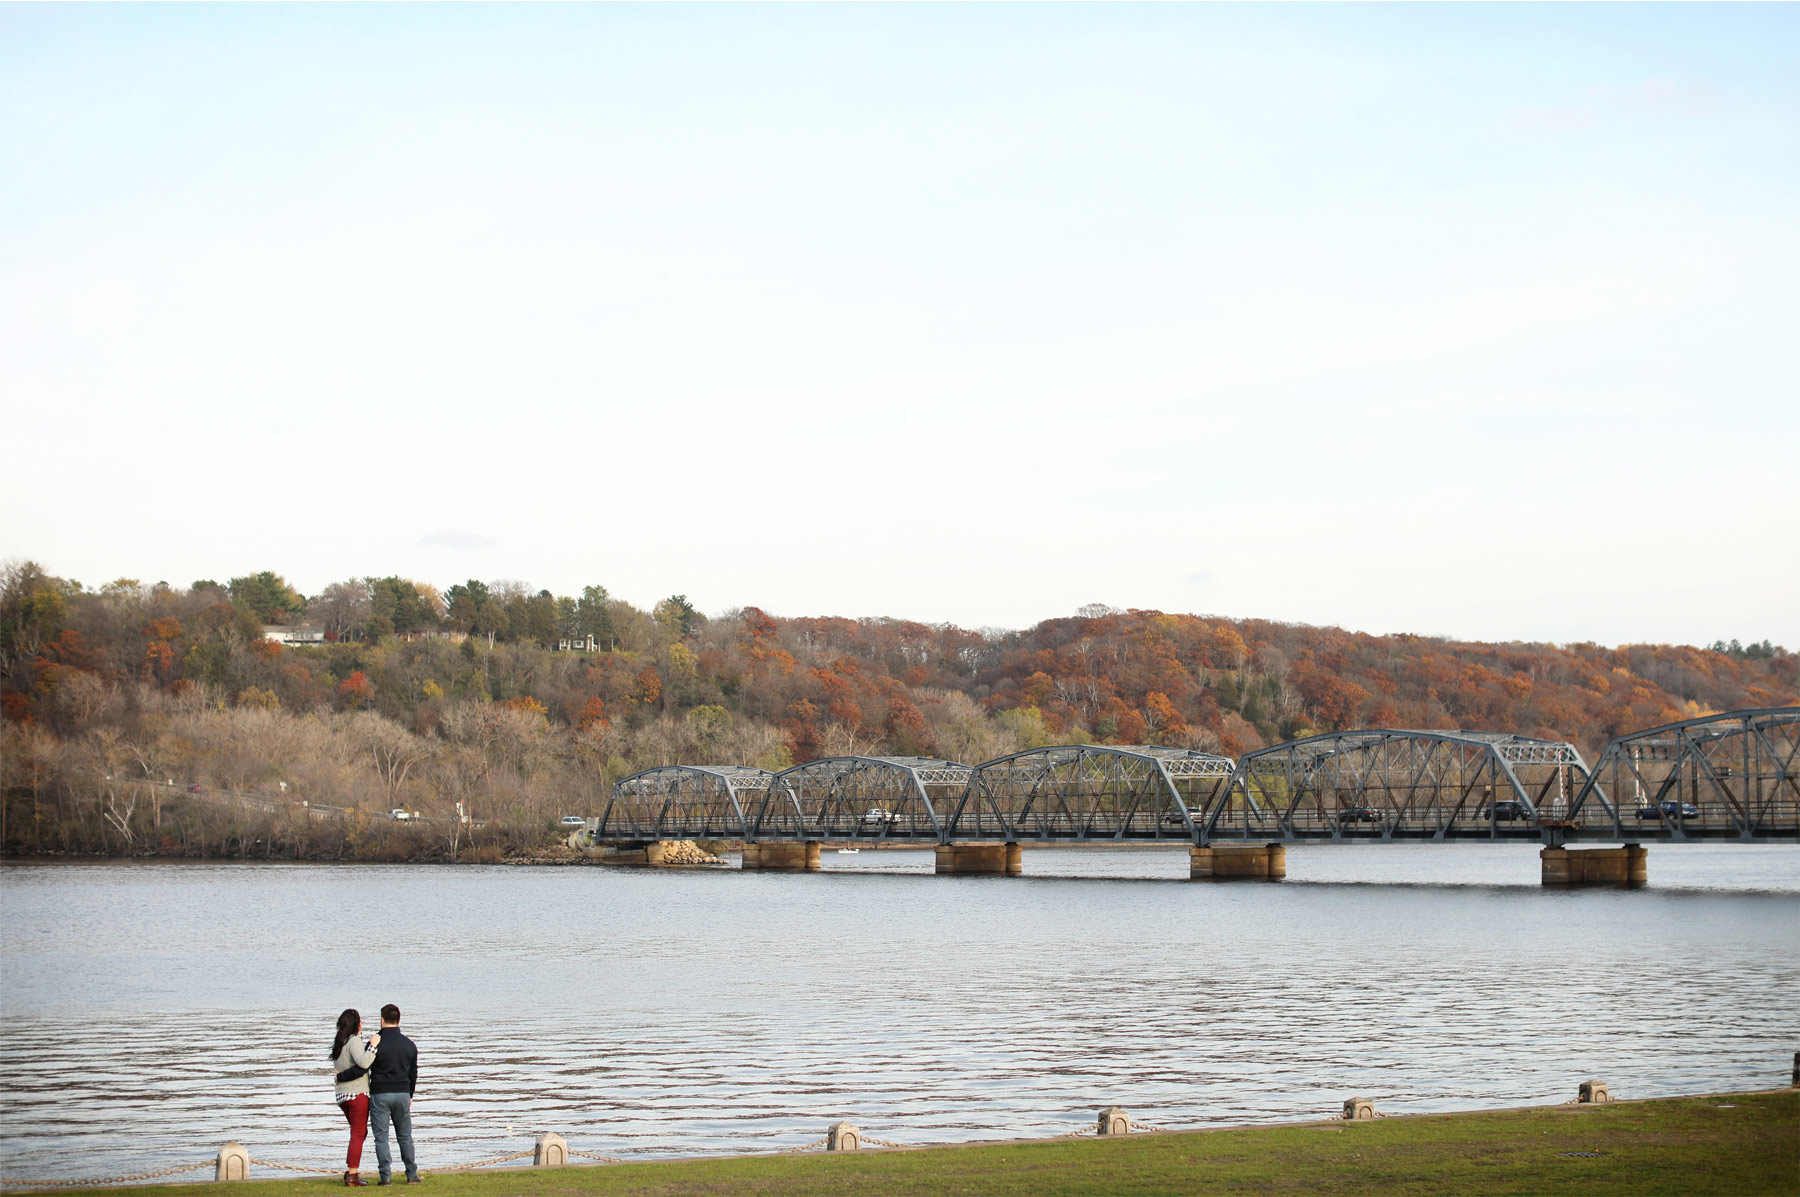 13-Stillwater-Minnesota-Wedding-Photographer-by-Andrew-Vick-Photography-Fall-Autumn-Engagement-Bride-Groom-Lift-Bridge-Embrace-Gillian-and-Nick.jpg